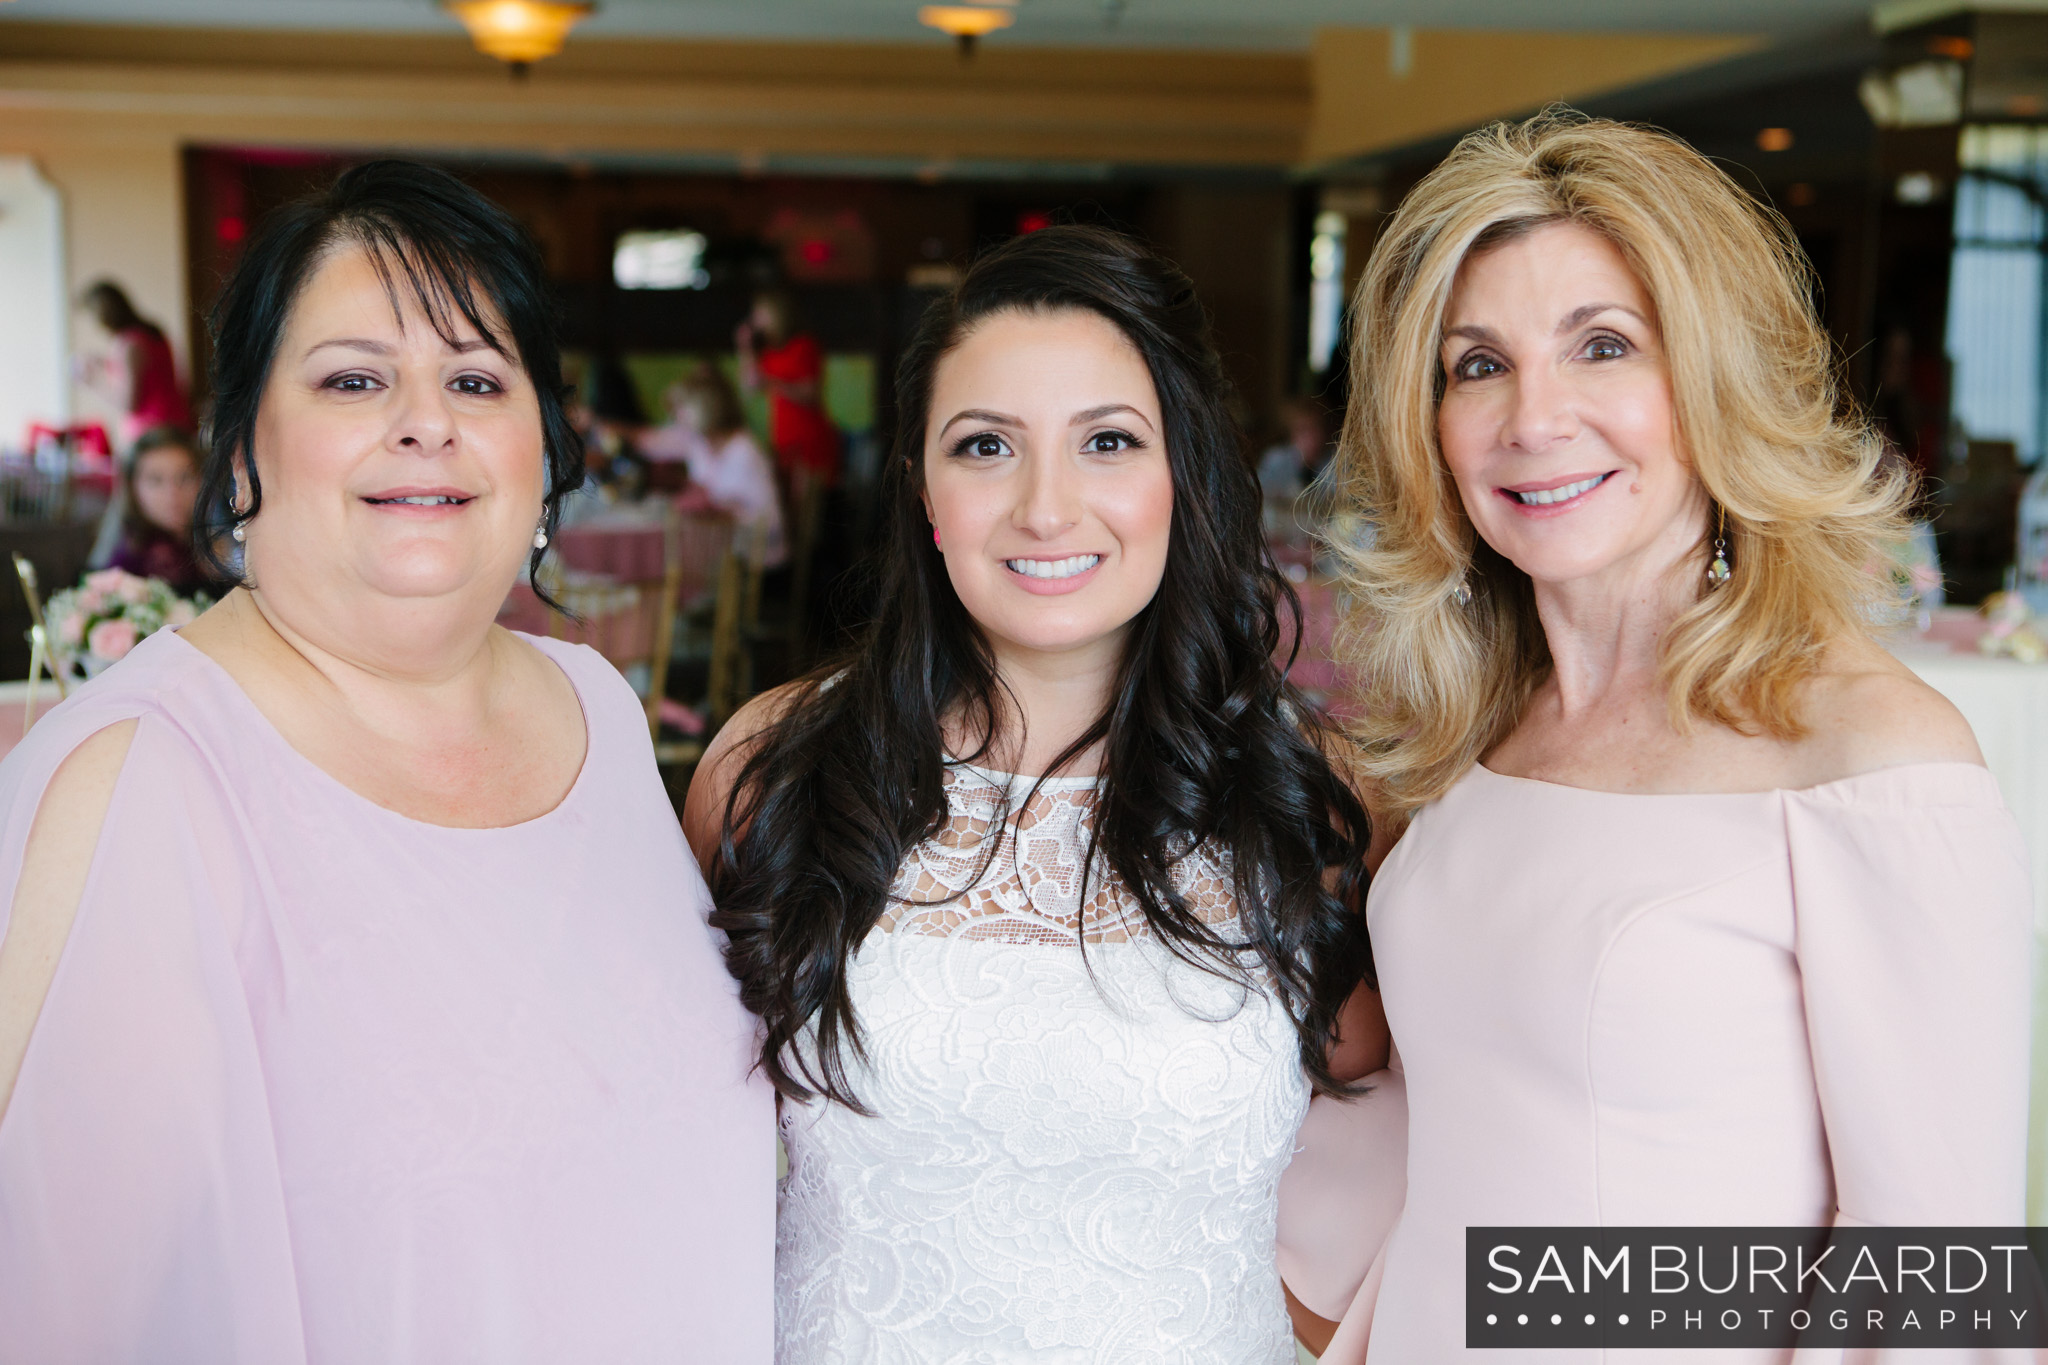 samburkardt_bridal_shower_trumbull_connecticut_photography_wedding_0025.jpg